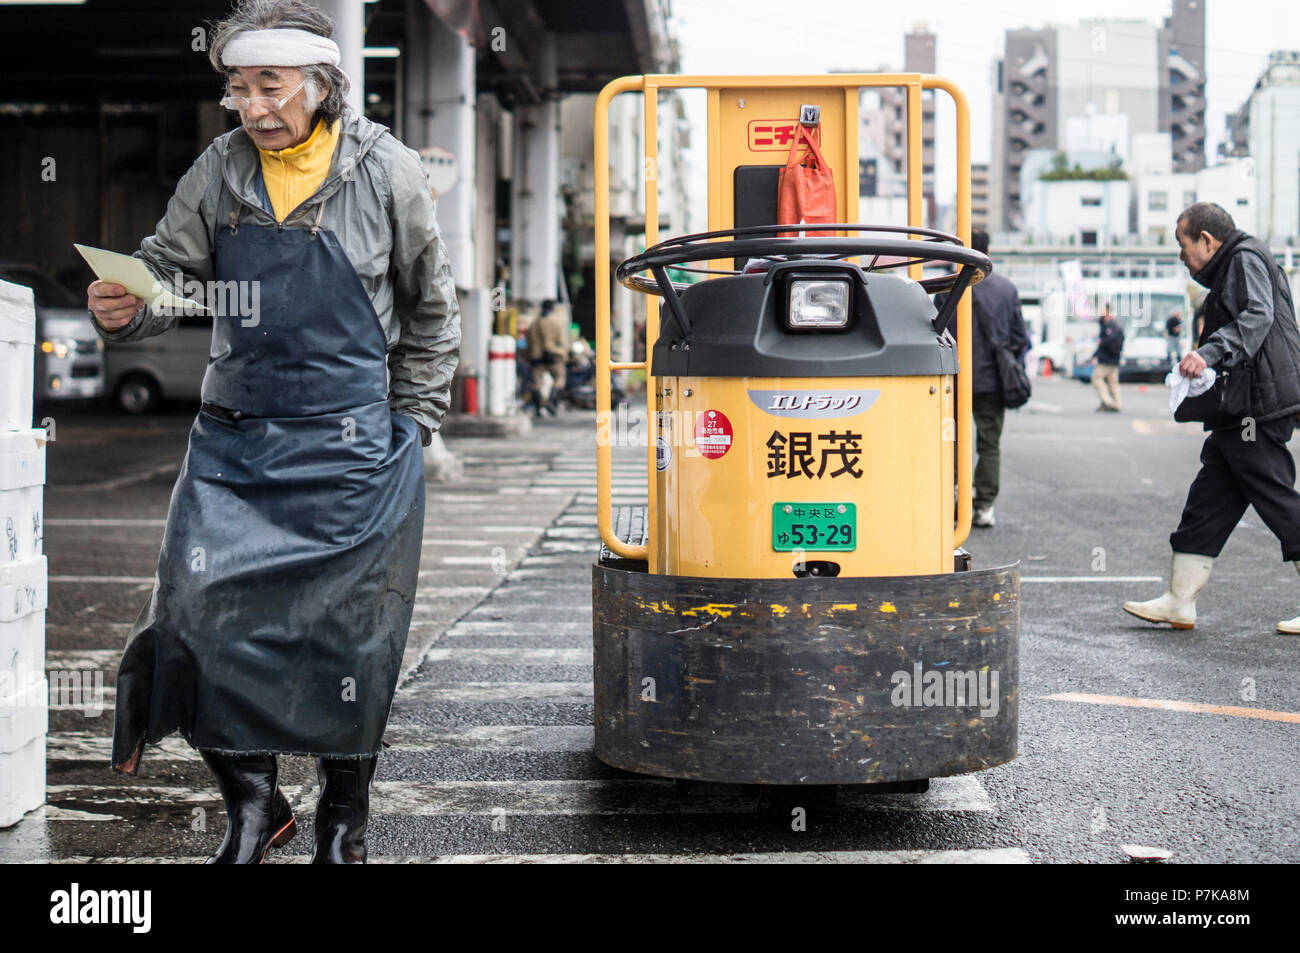 A worker at the fish market in Tokyo - Stock Image